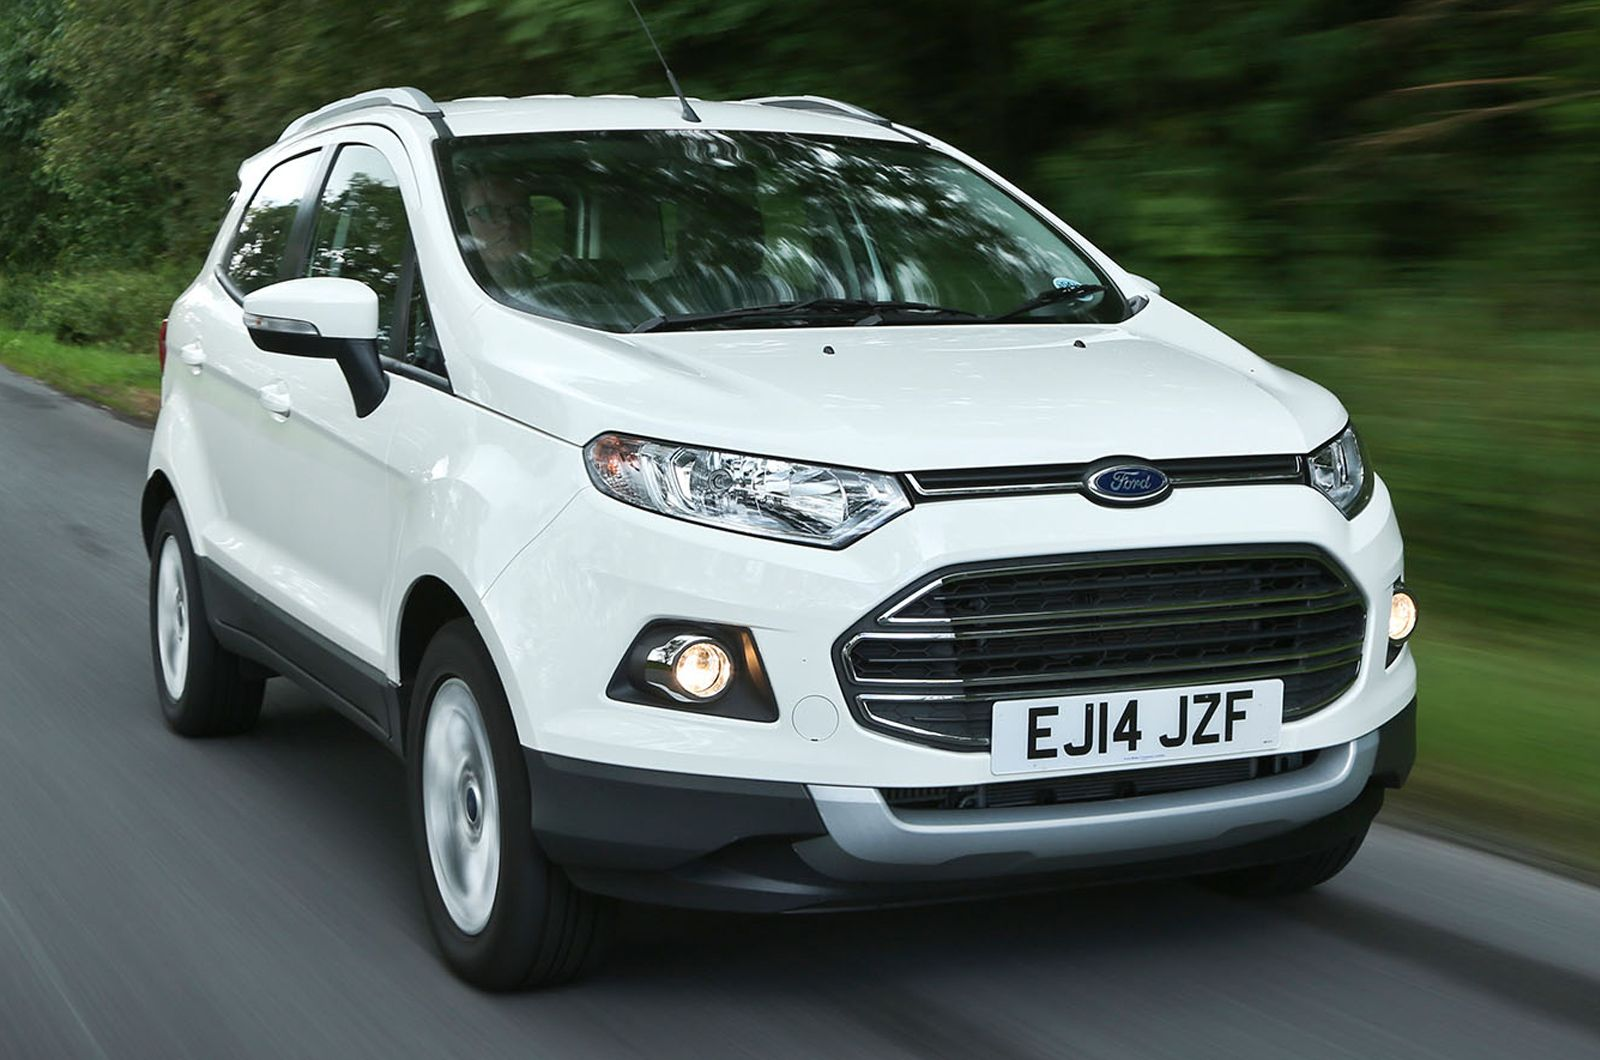 Engine ford ecosport 2015 car autos review ford car2015 ecosport visit car2015reviews com ford ecosport 2015 pinterest cars autos and 2015 cars